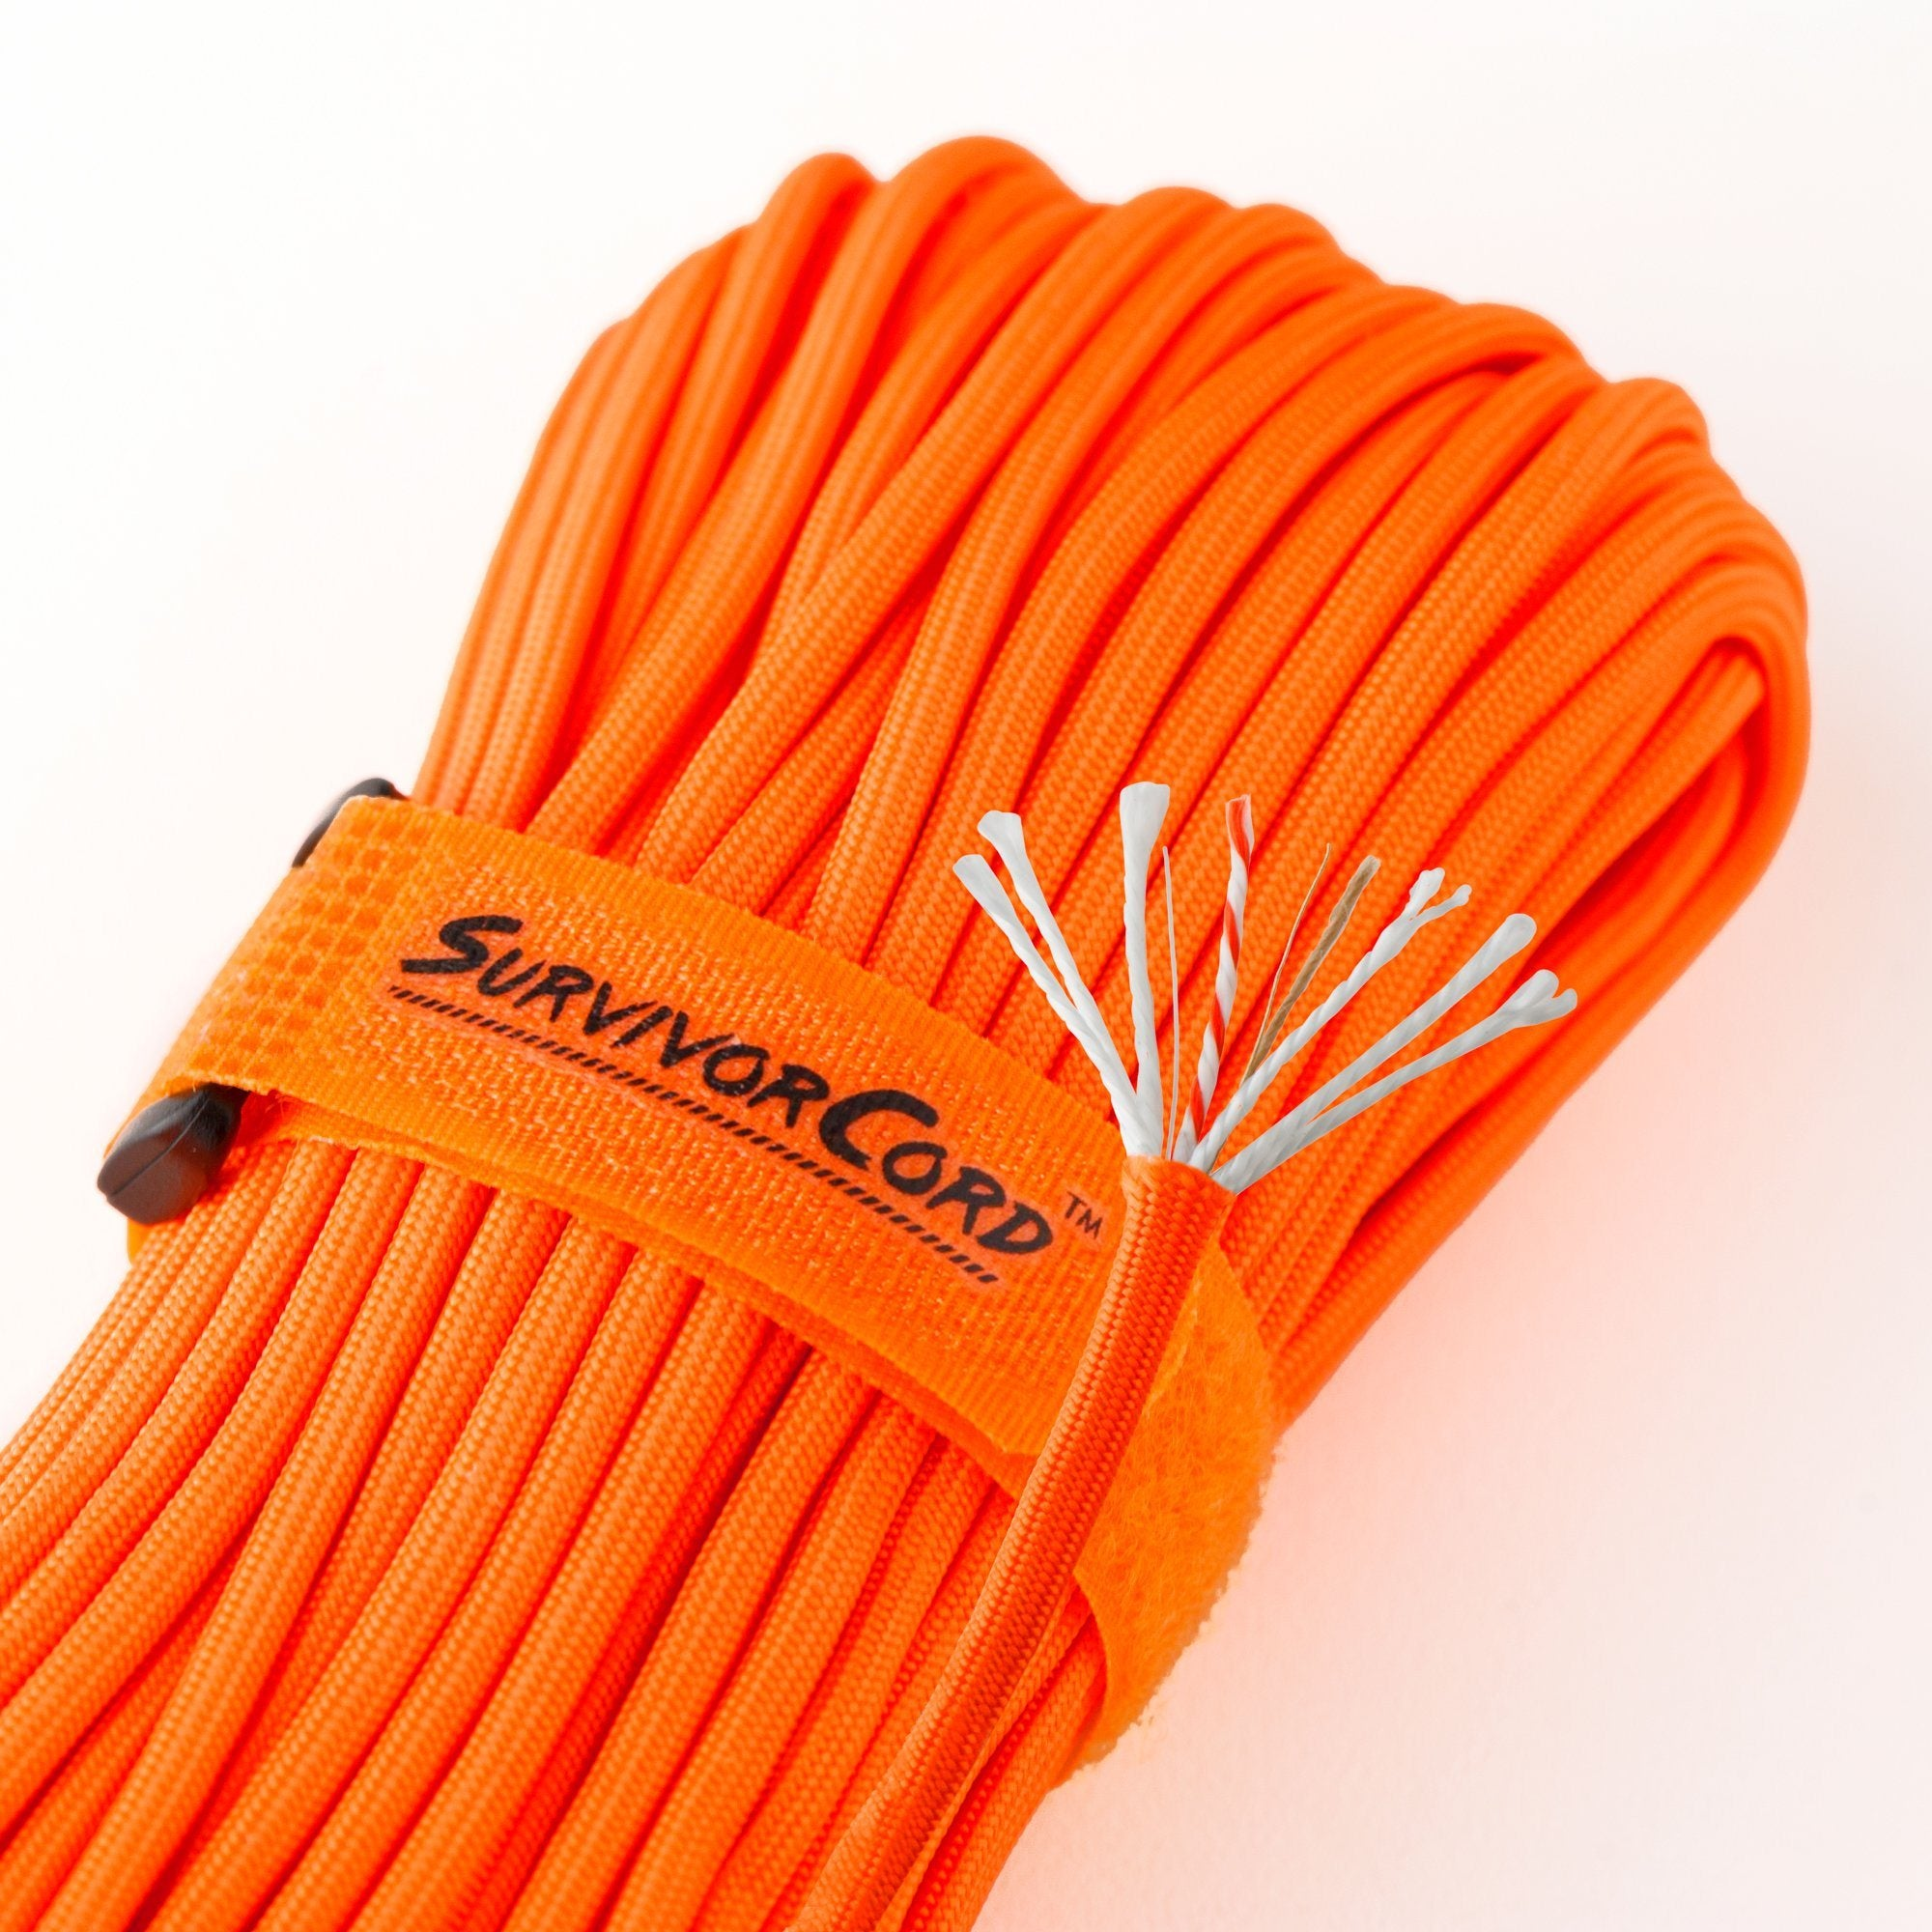 SurvivorCord | SAFETY-ORANGE SurvivorCord TITAN Survival